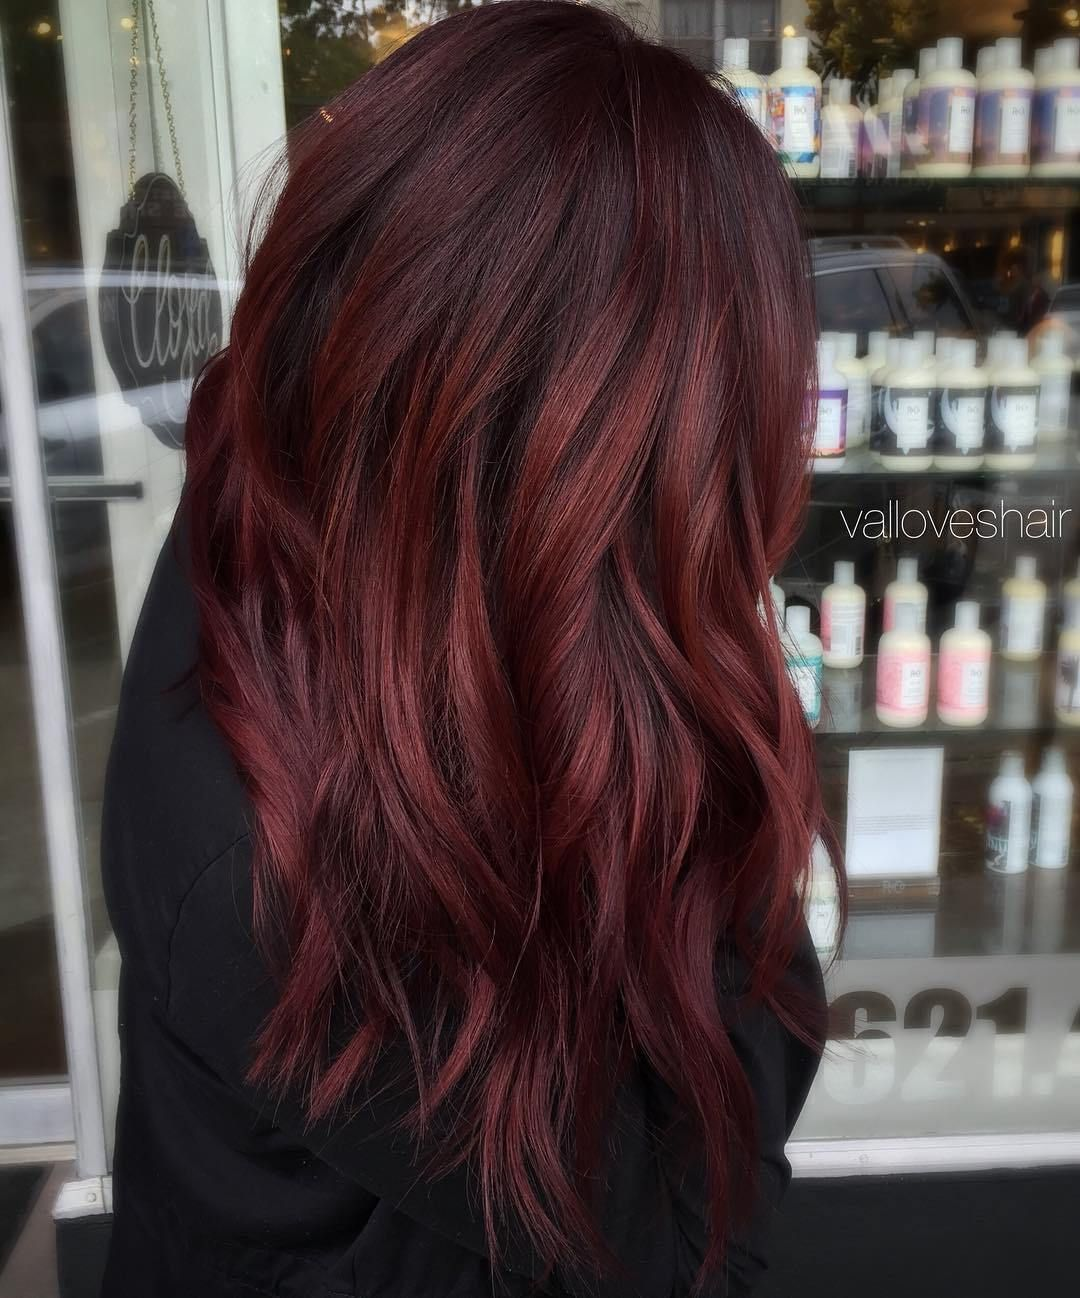 Dark Brown and Red Hair Color Best Rated Home Hair Color Check